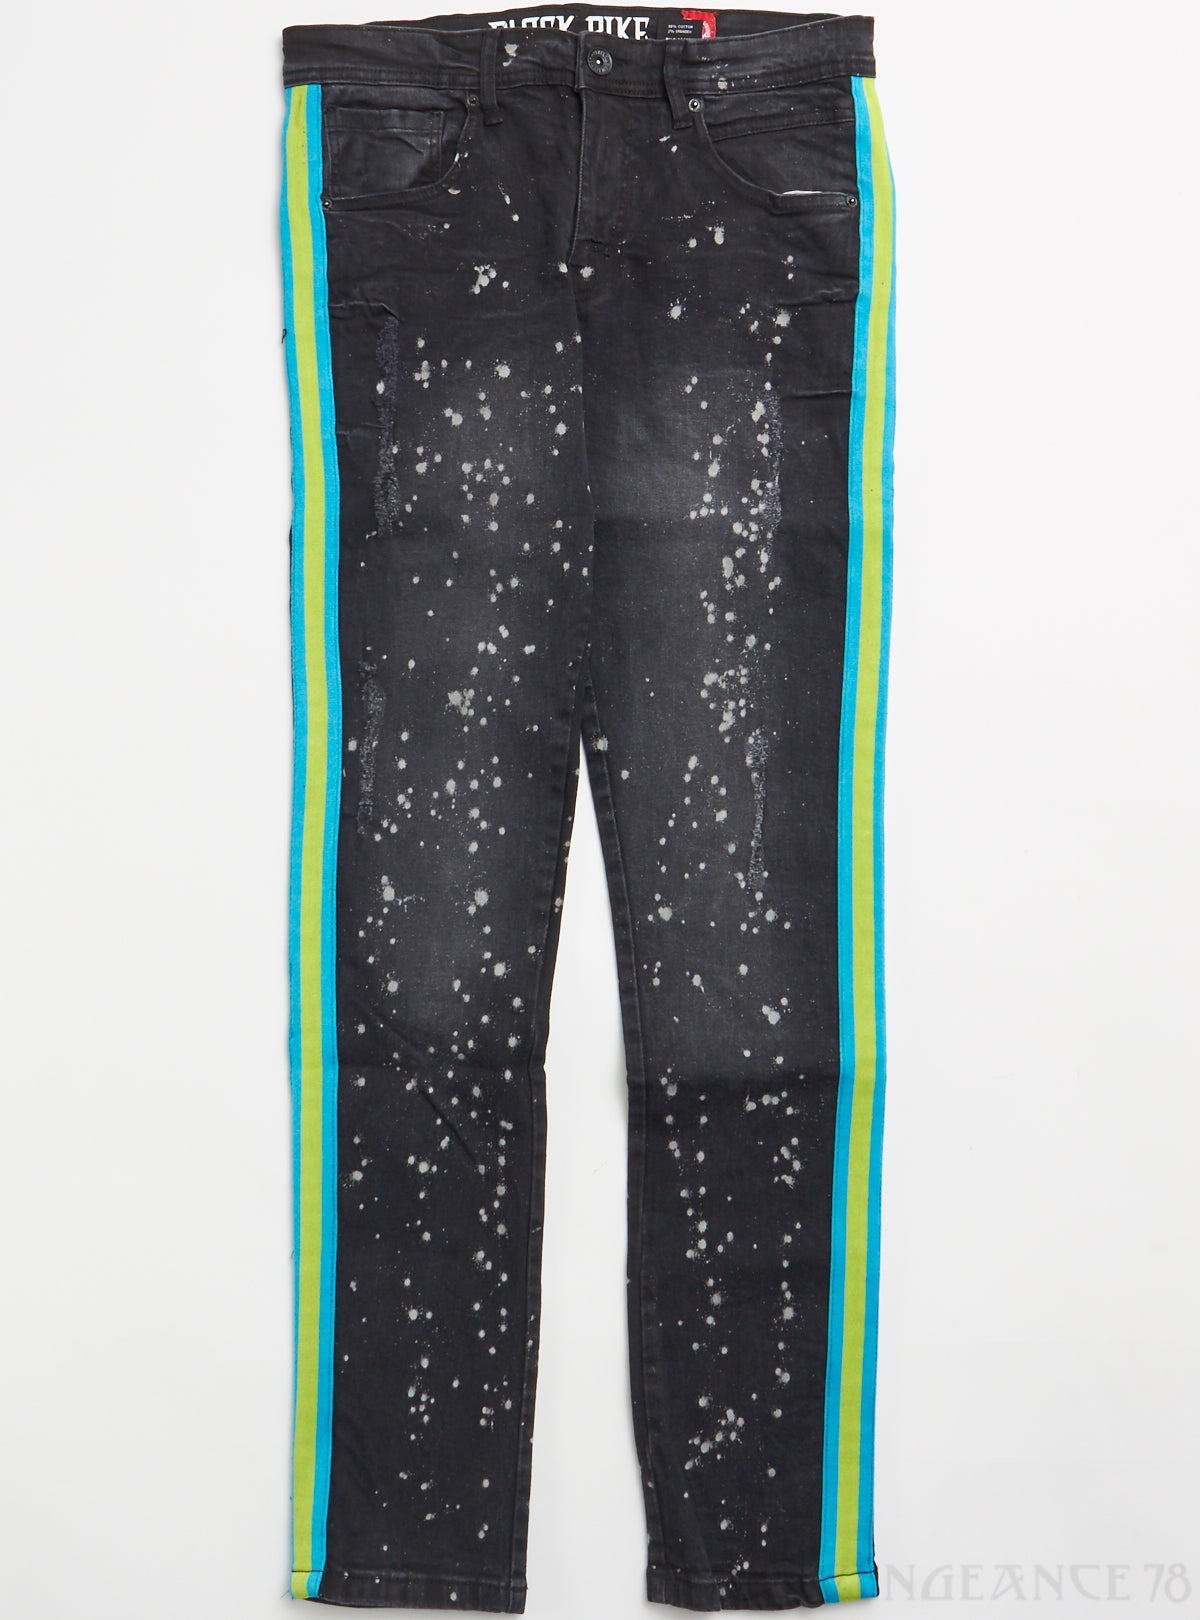 Black Pike Jeans - Fashion Denim with Knitted Taping, Paint Splatter - Black - BS0704